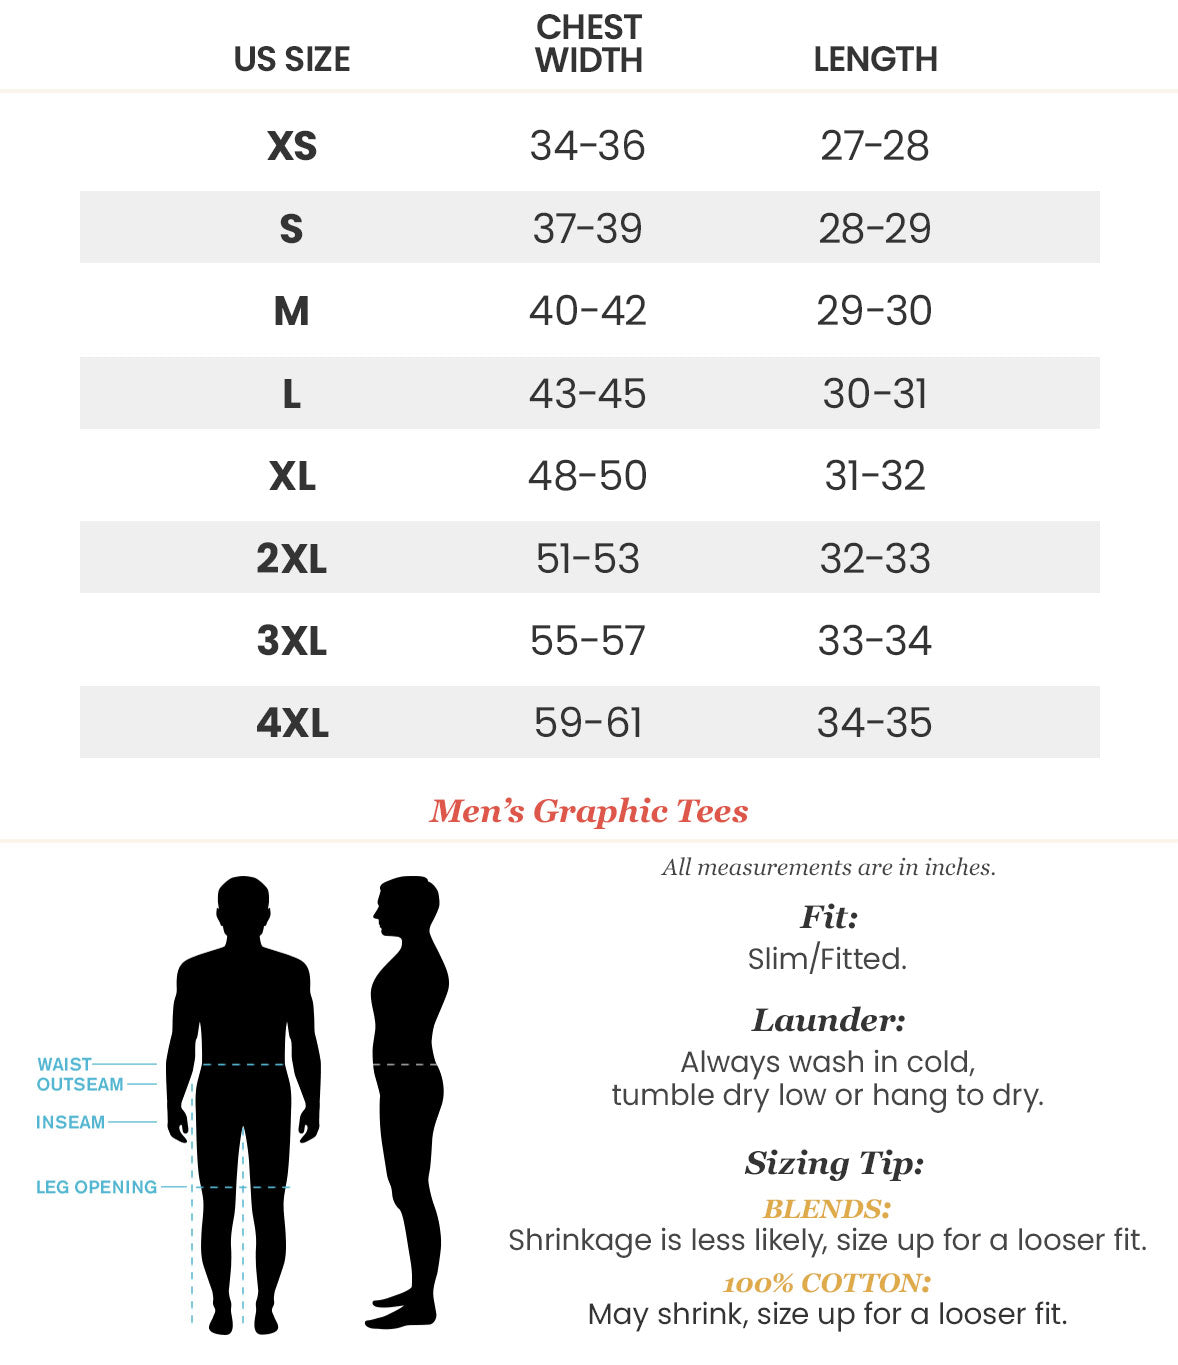 NA210N6-HG-OH Men's Graphic T-Shirt Size Chart